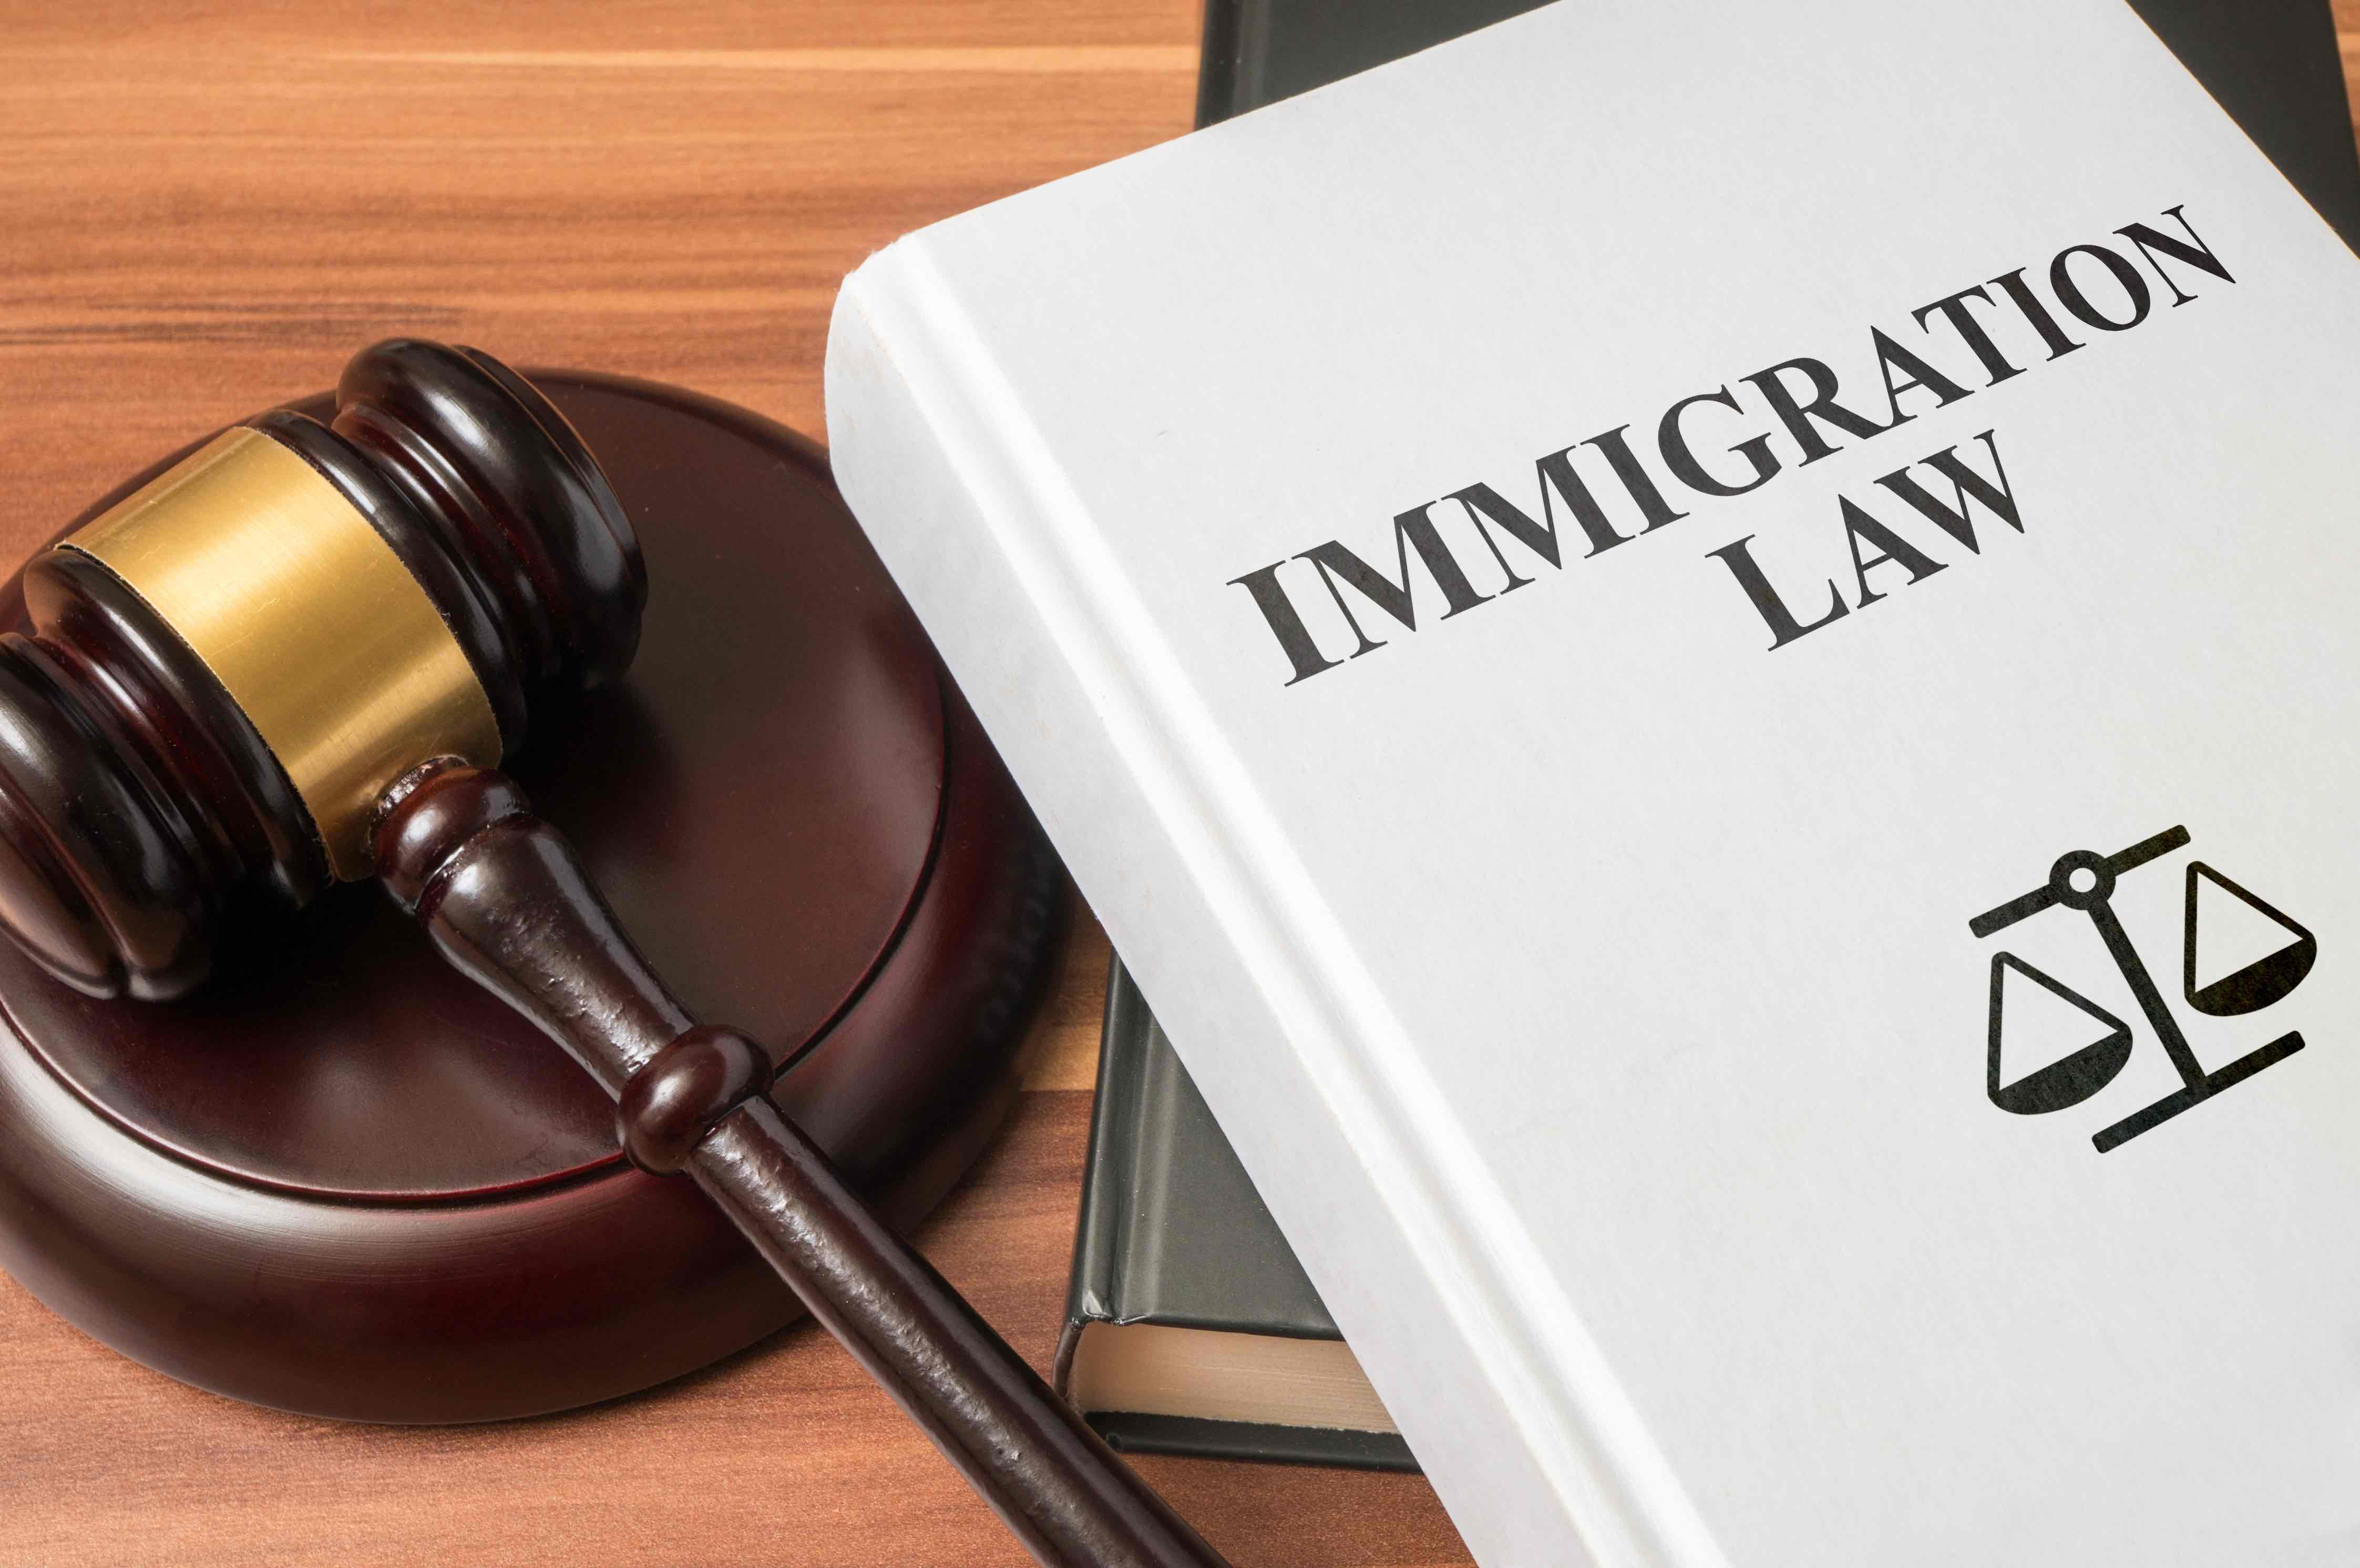 USA Immigration Lawyer Services